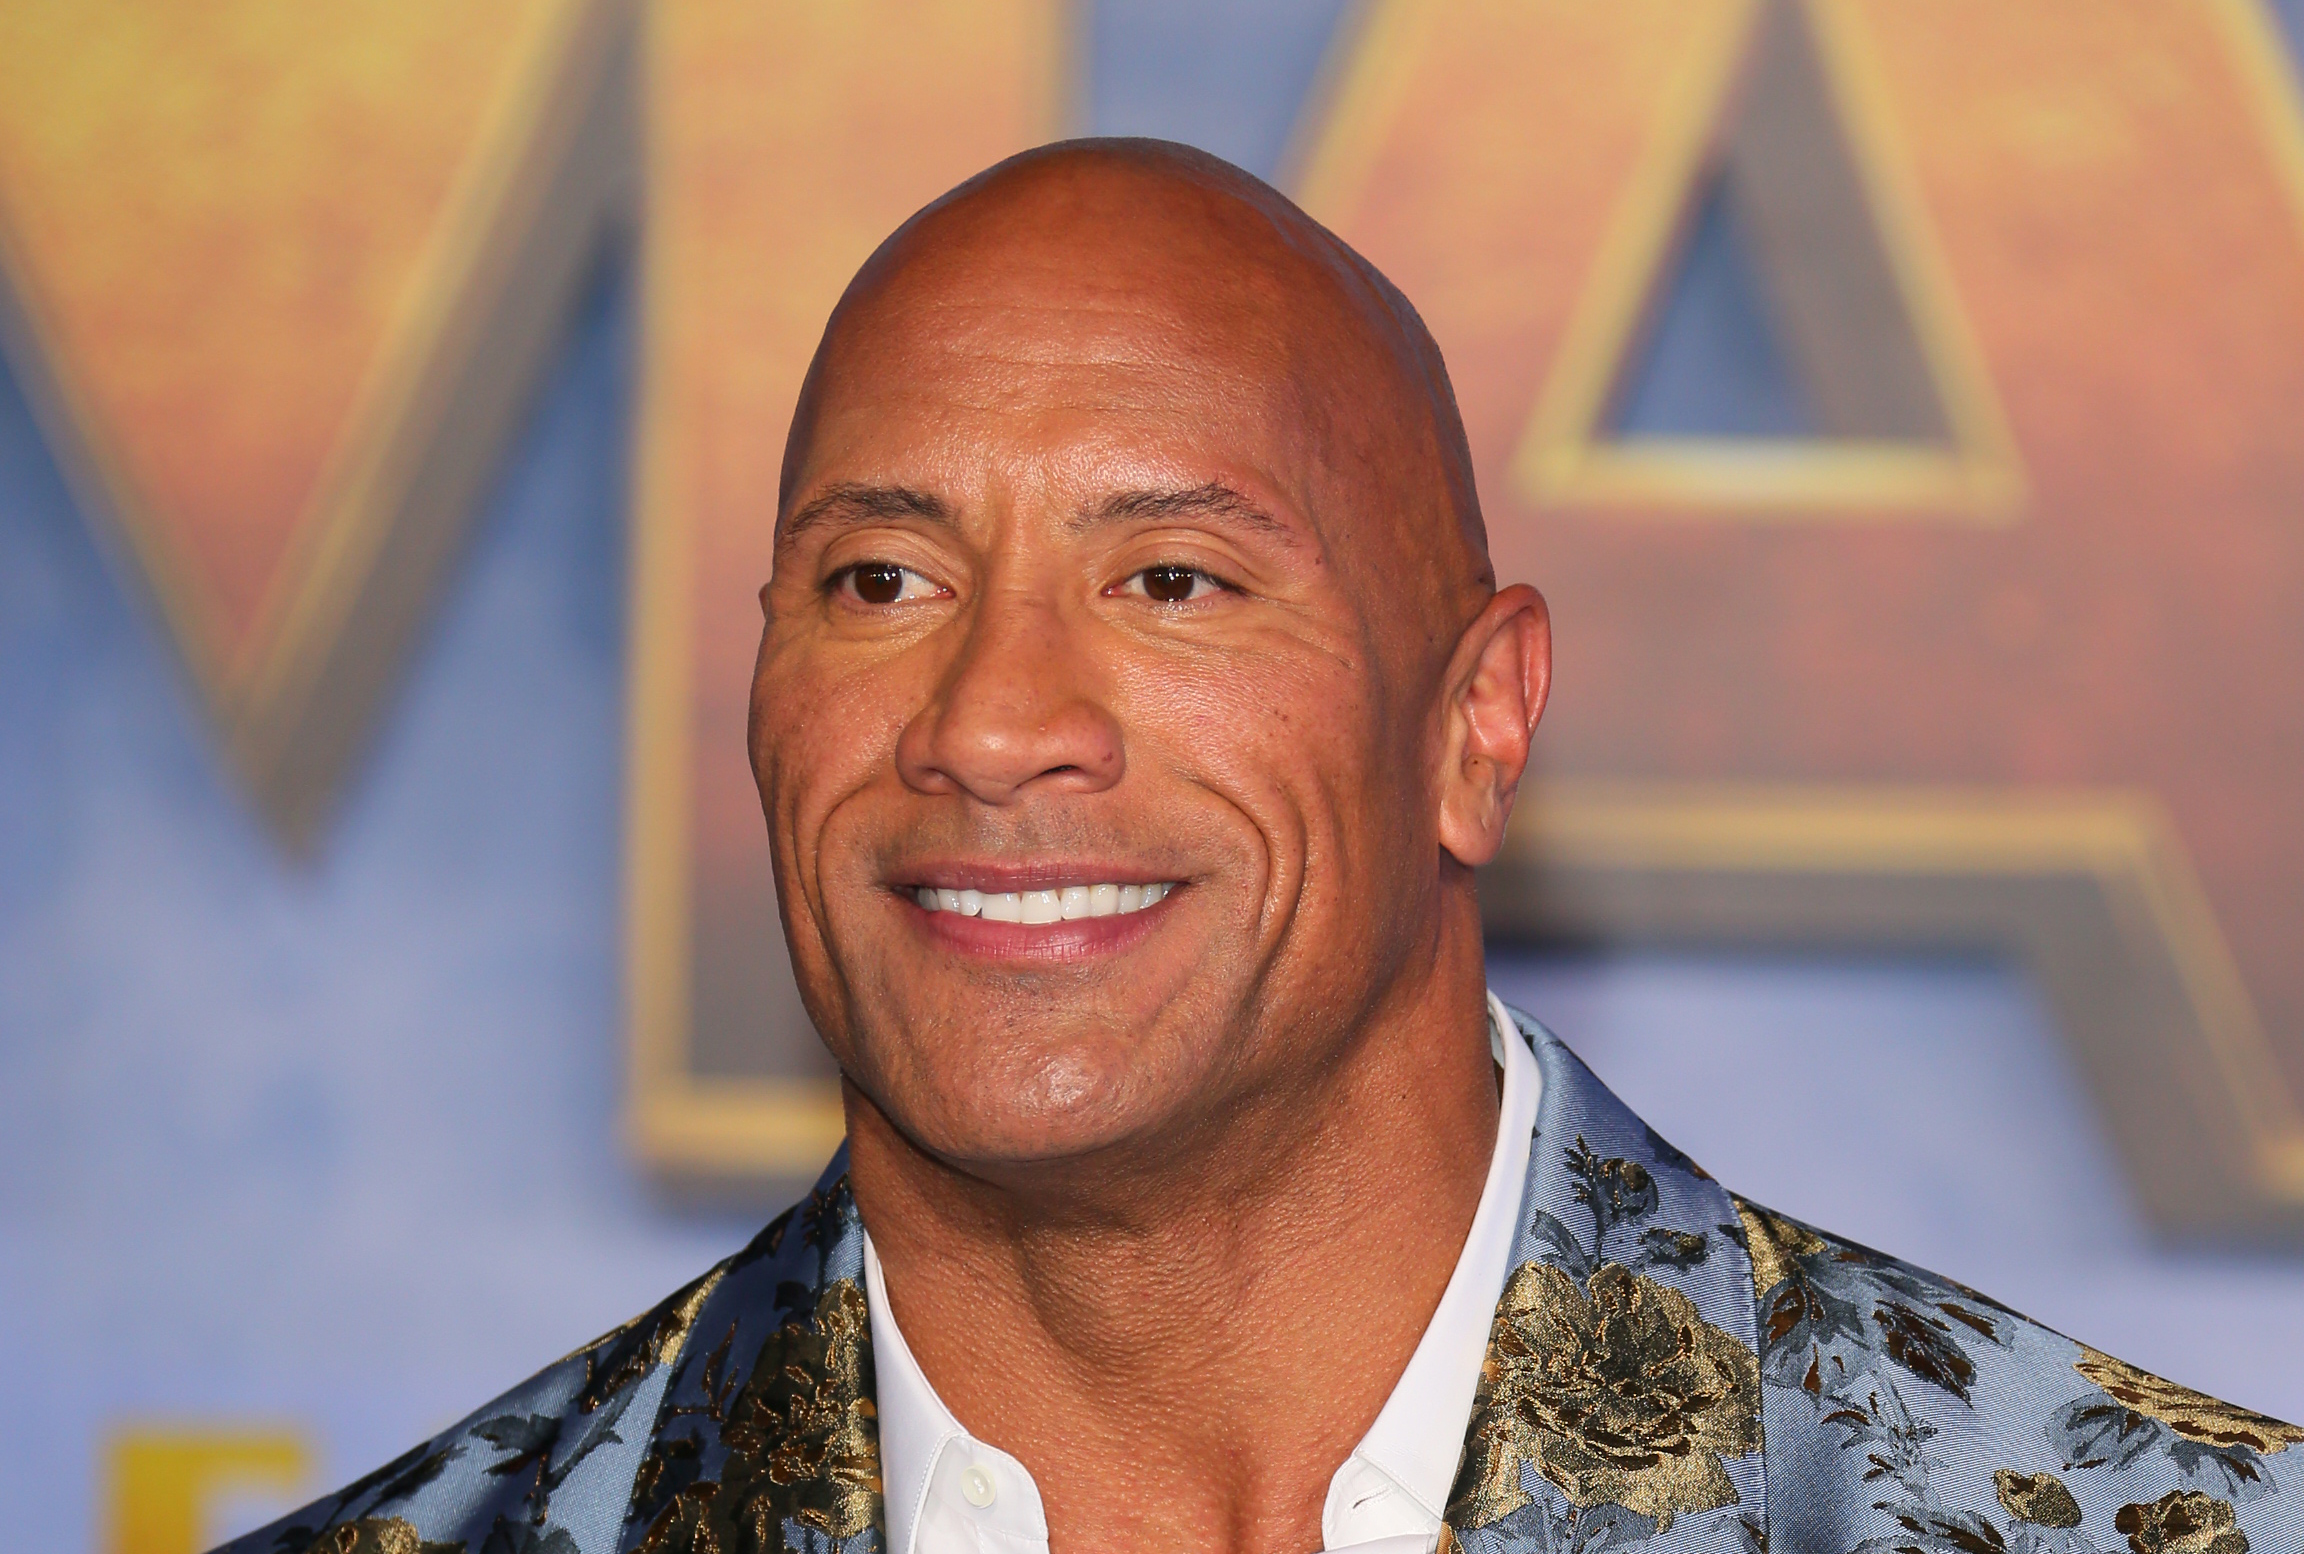 Dwayne 'The Rock' Johnson says Netflix film 'Red Notice' will resume shooting in a 'quarantined bubble'